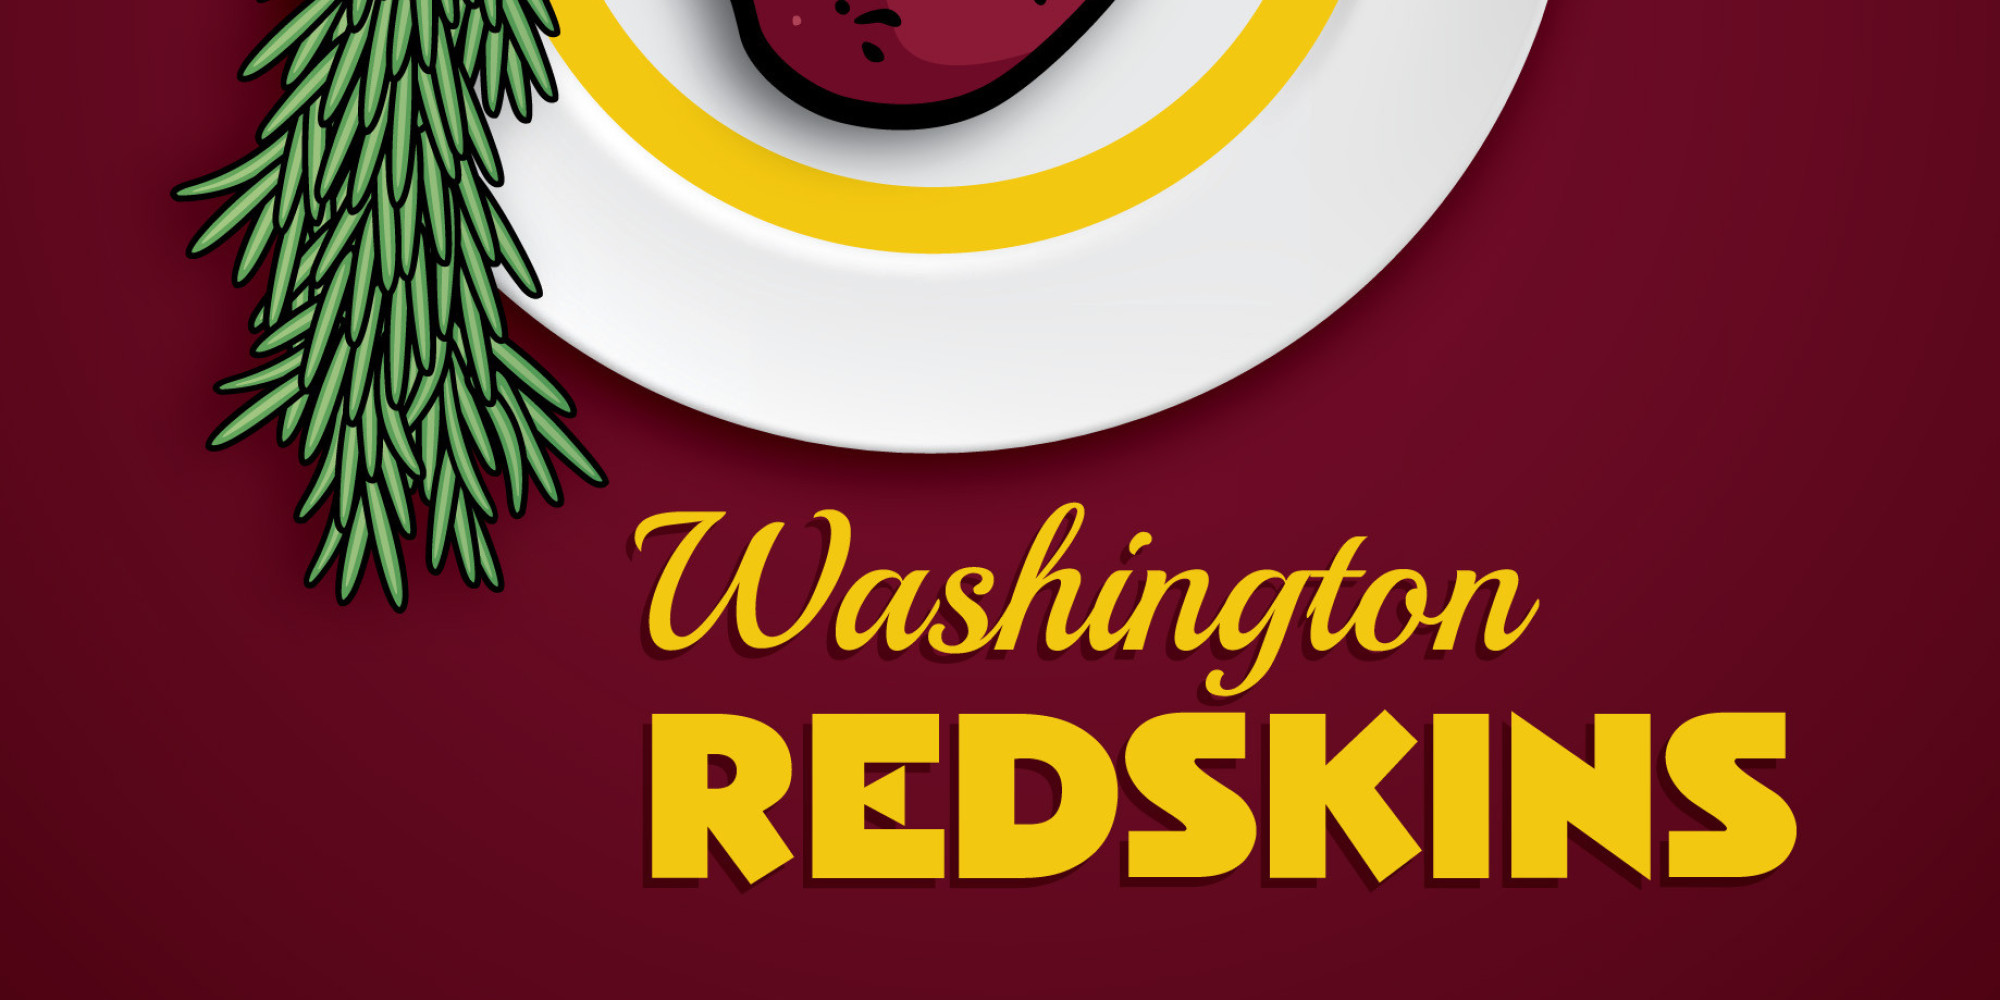 Peta tells washington redskins to keep name change logo a peta tells washington redskins to keep name change logo a potato updated huffpost voltagebd Image collections